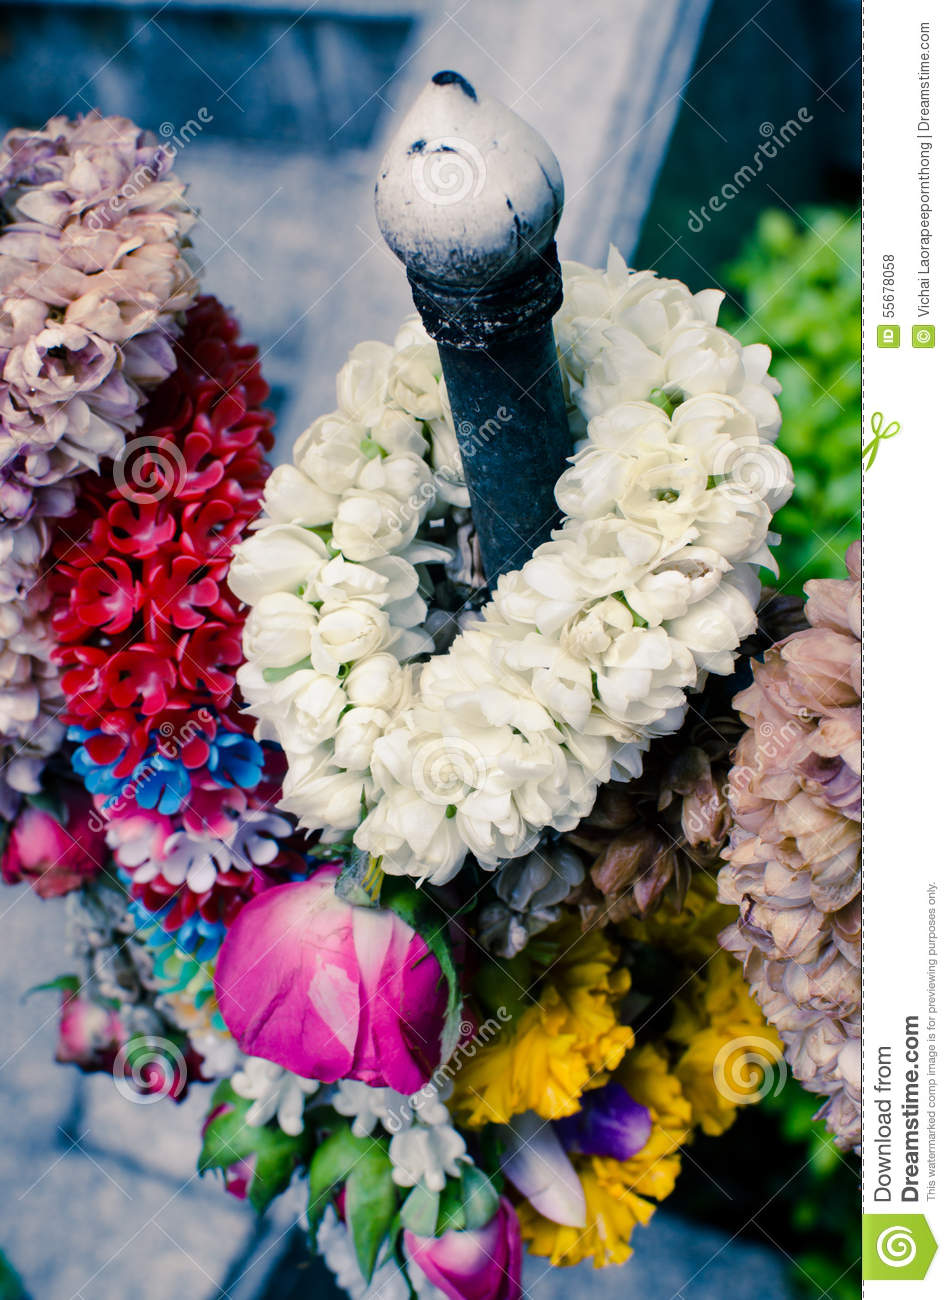 Thai Garland Of Colorful Flowers Stock Photo Image Of Symbol